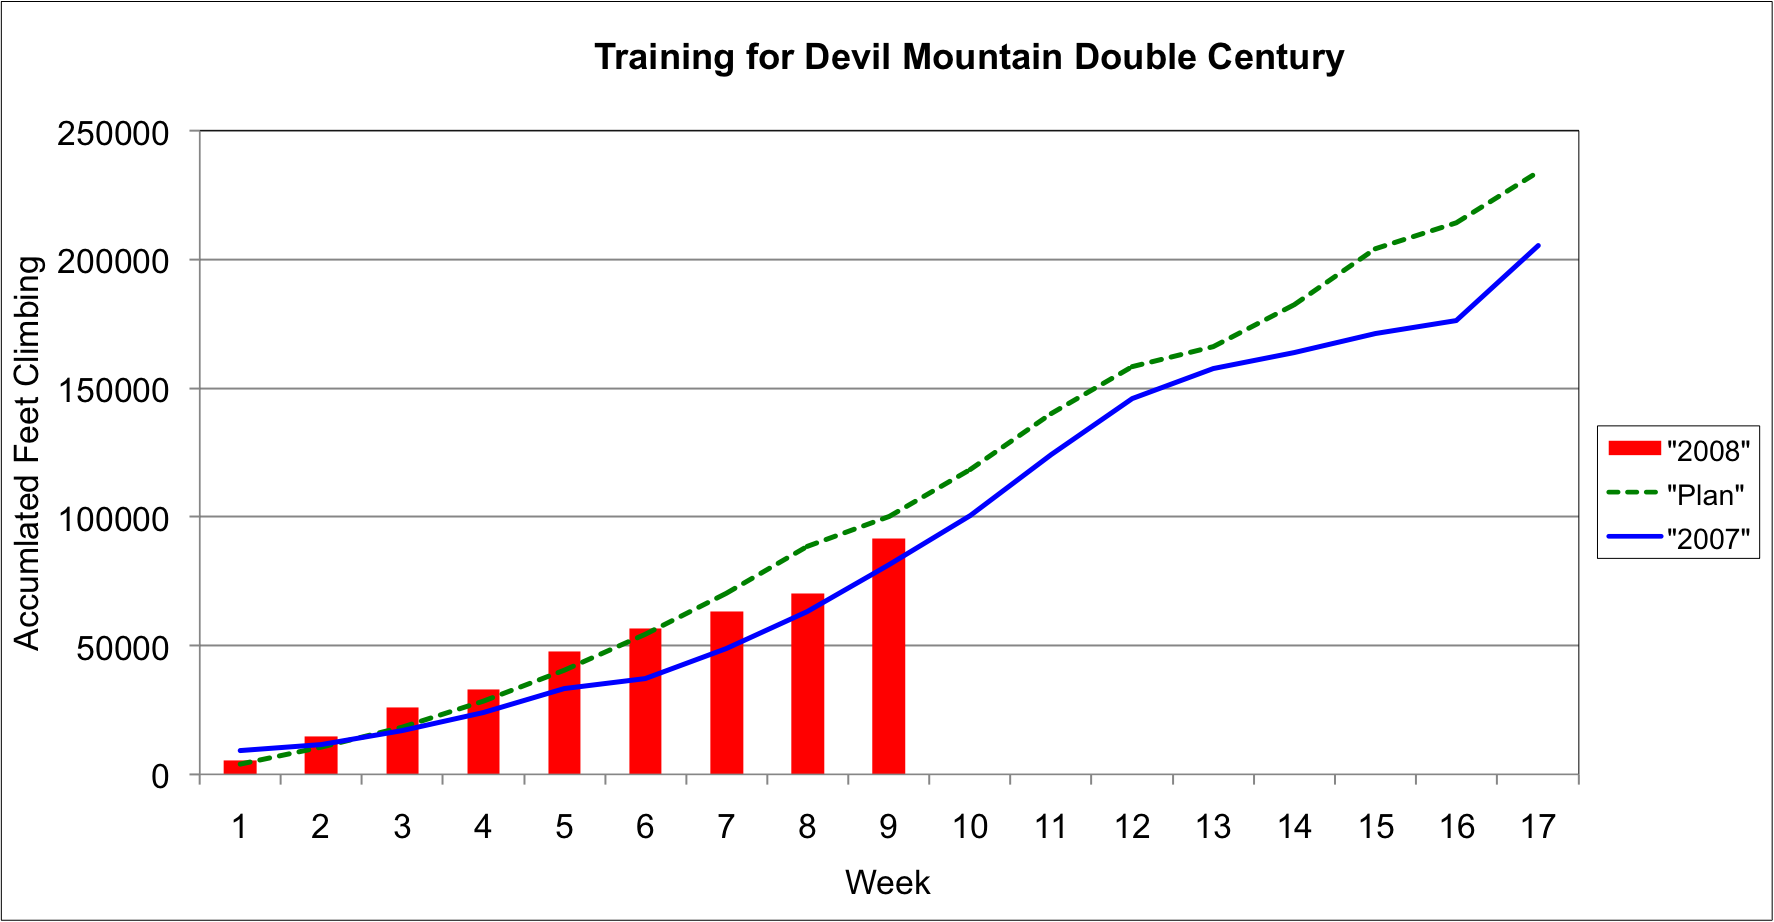 DMD Training Accumulated Feet Climbing as of Week 9